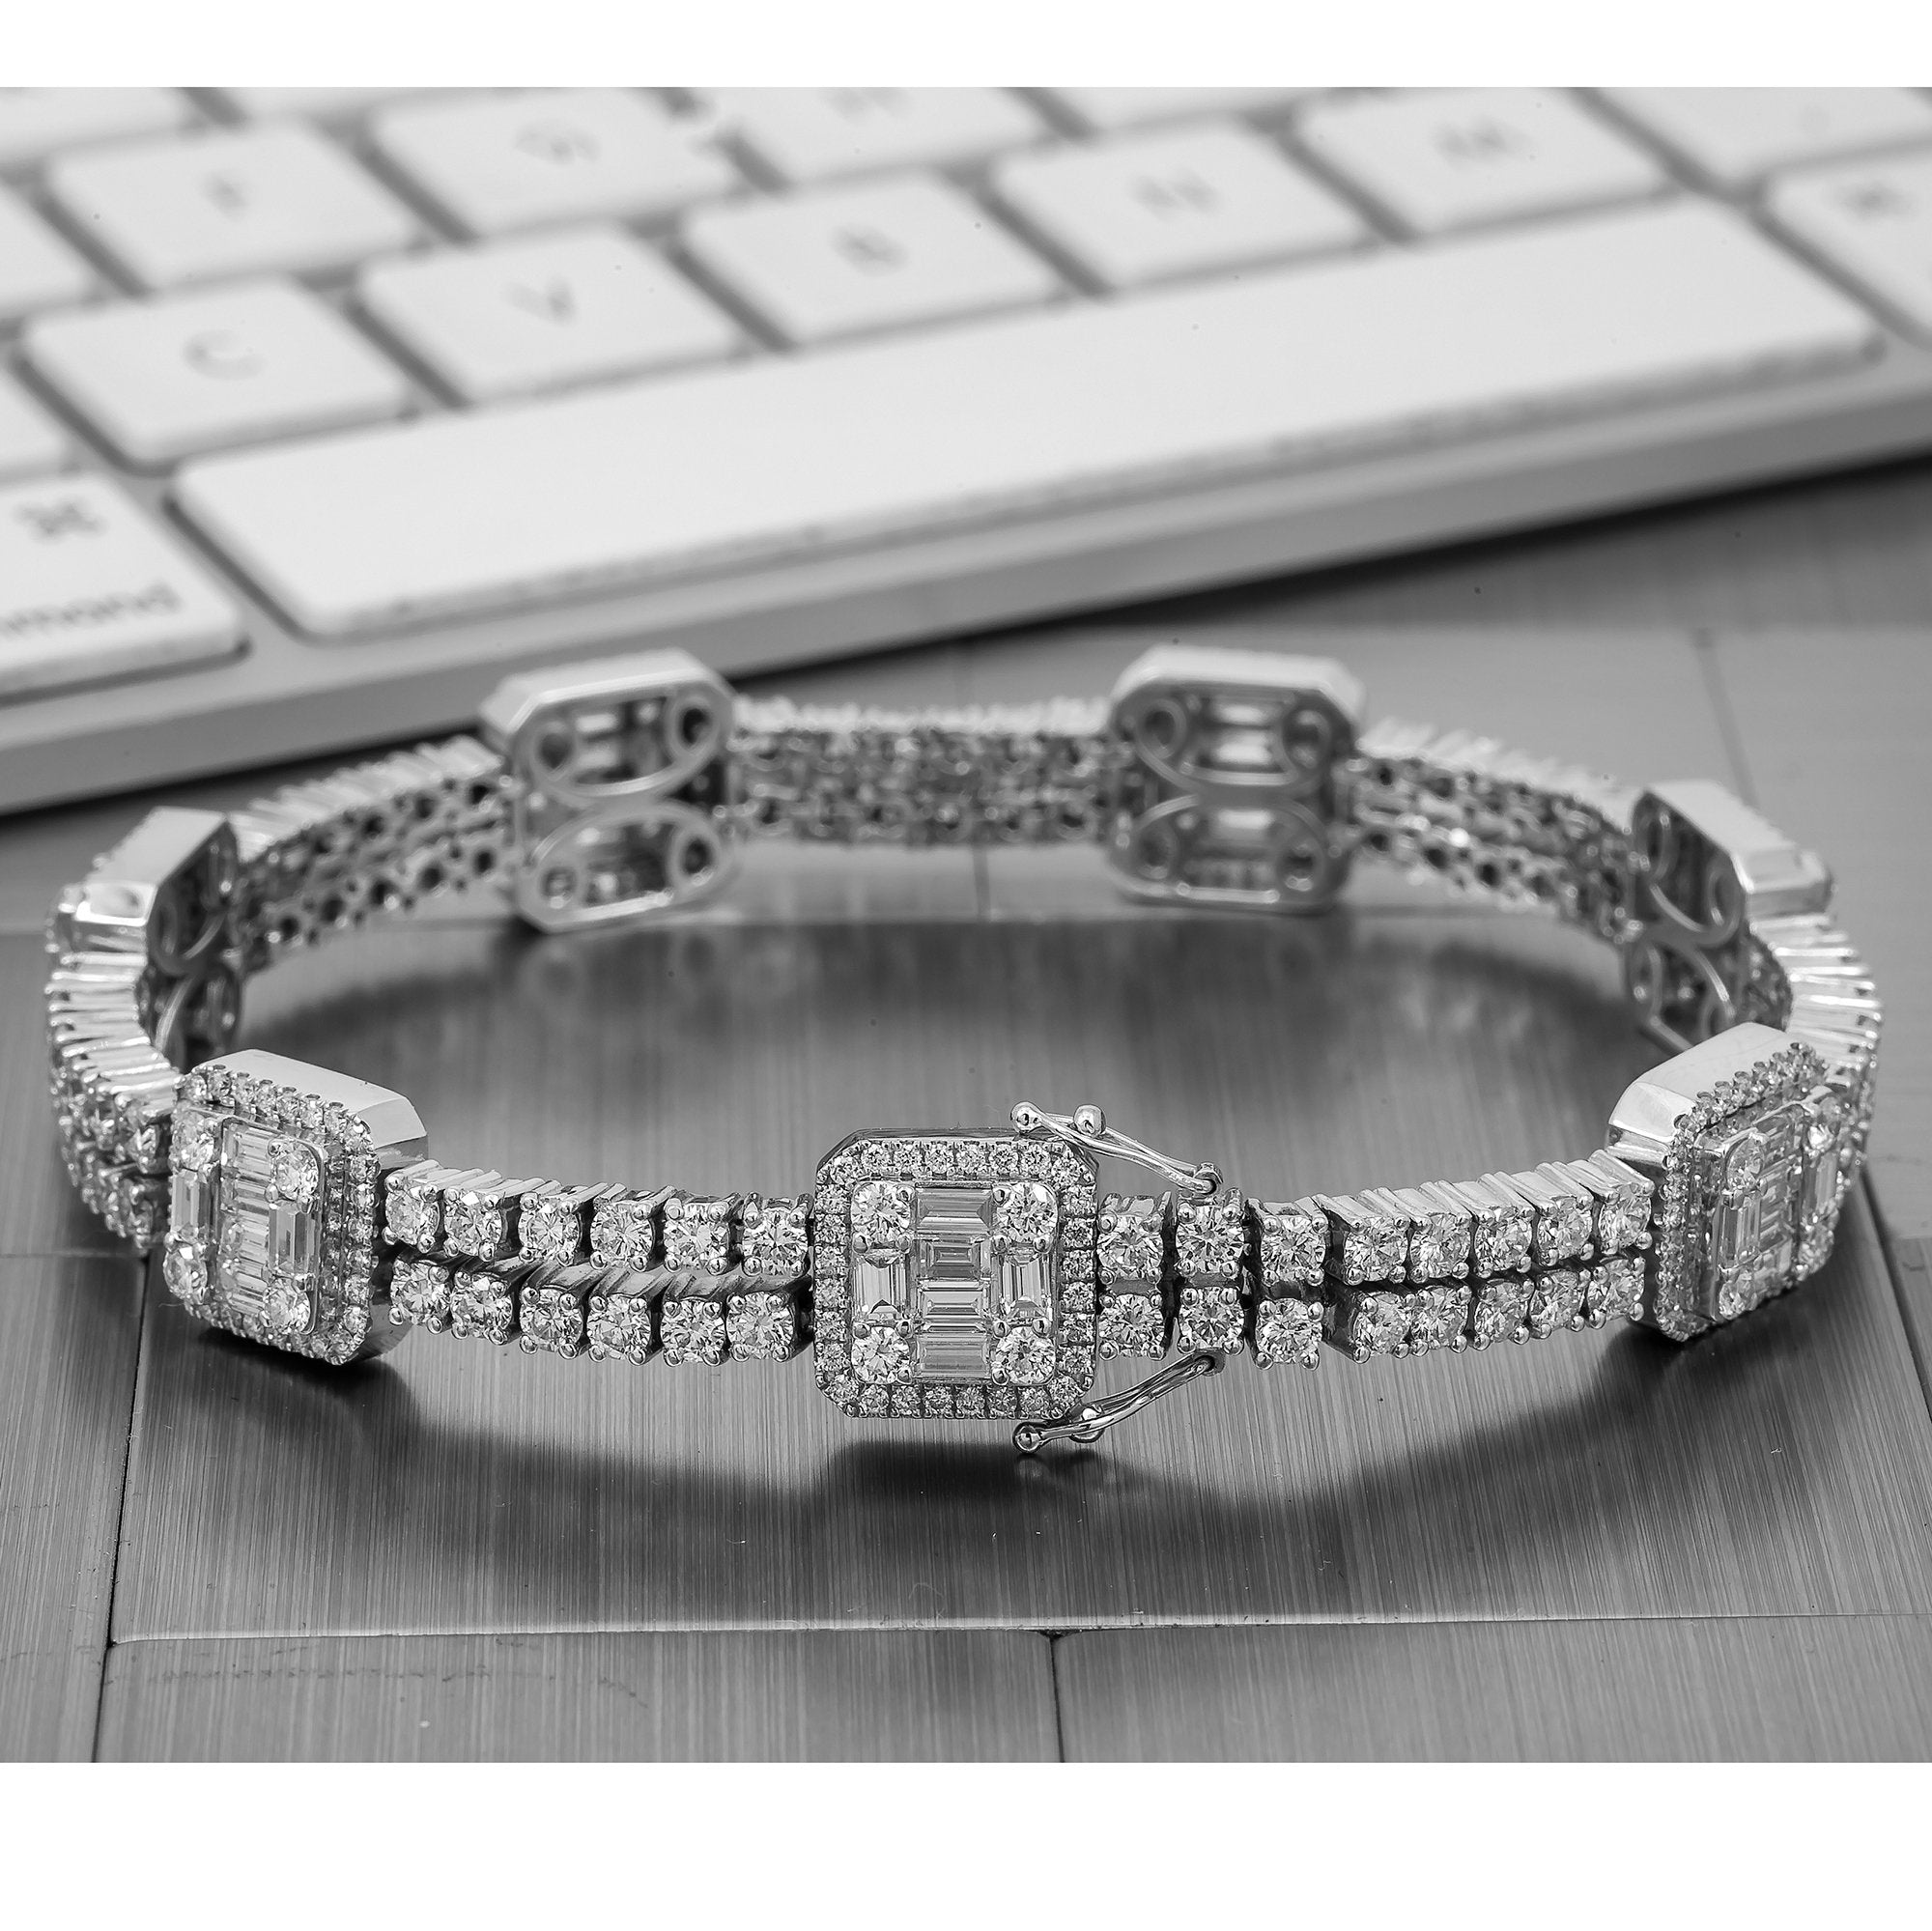 Fancy 14K White Gold Men's Bracelet With 10.50 CT Round and Baguette Diamonds